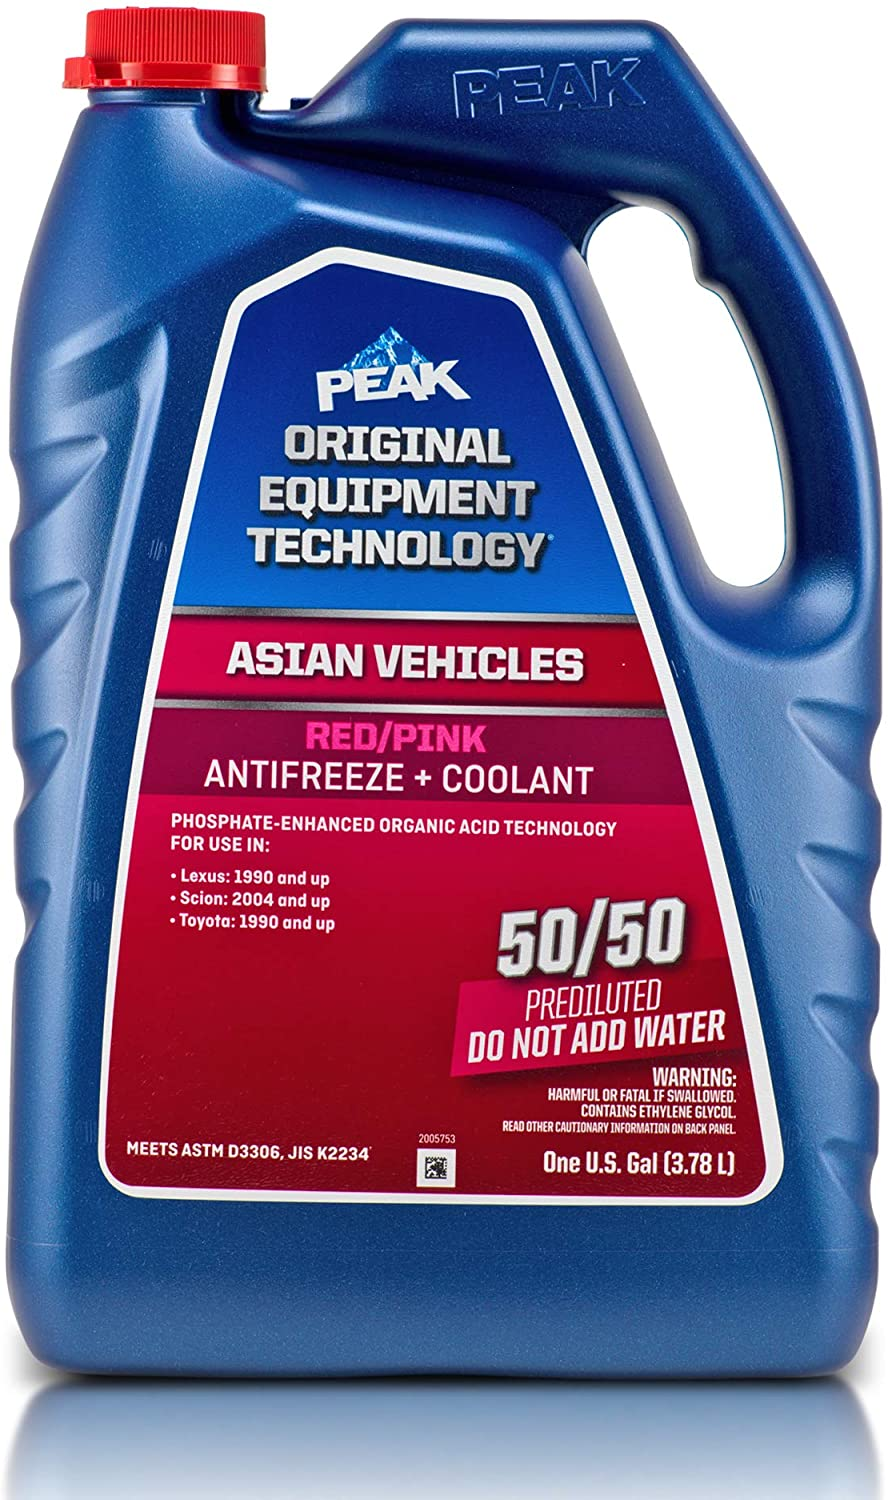 PEAK OET Daily bargain sale Extended Life Now free shipping Red Cool Pink 50 Antifreeze Prediluted